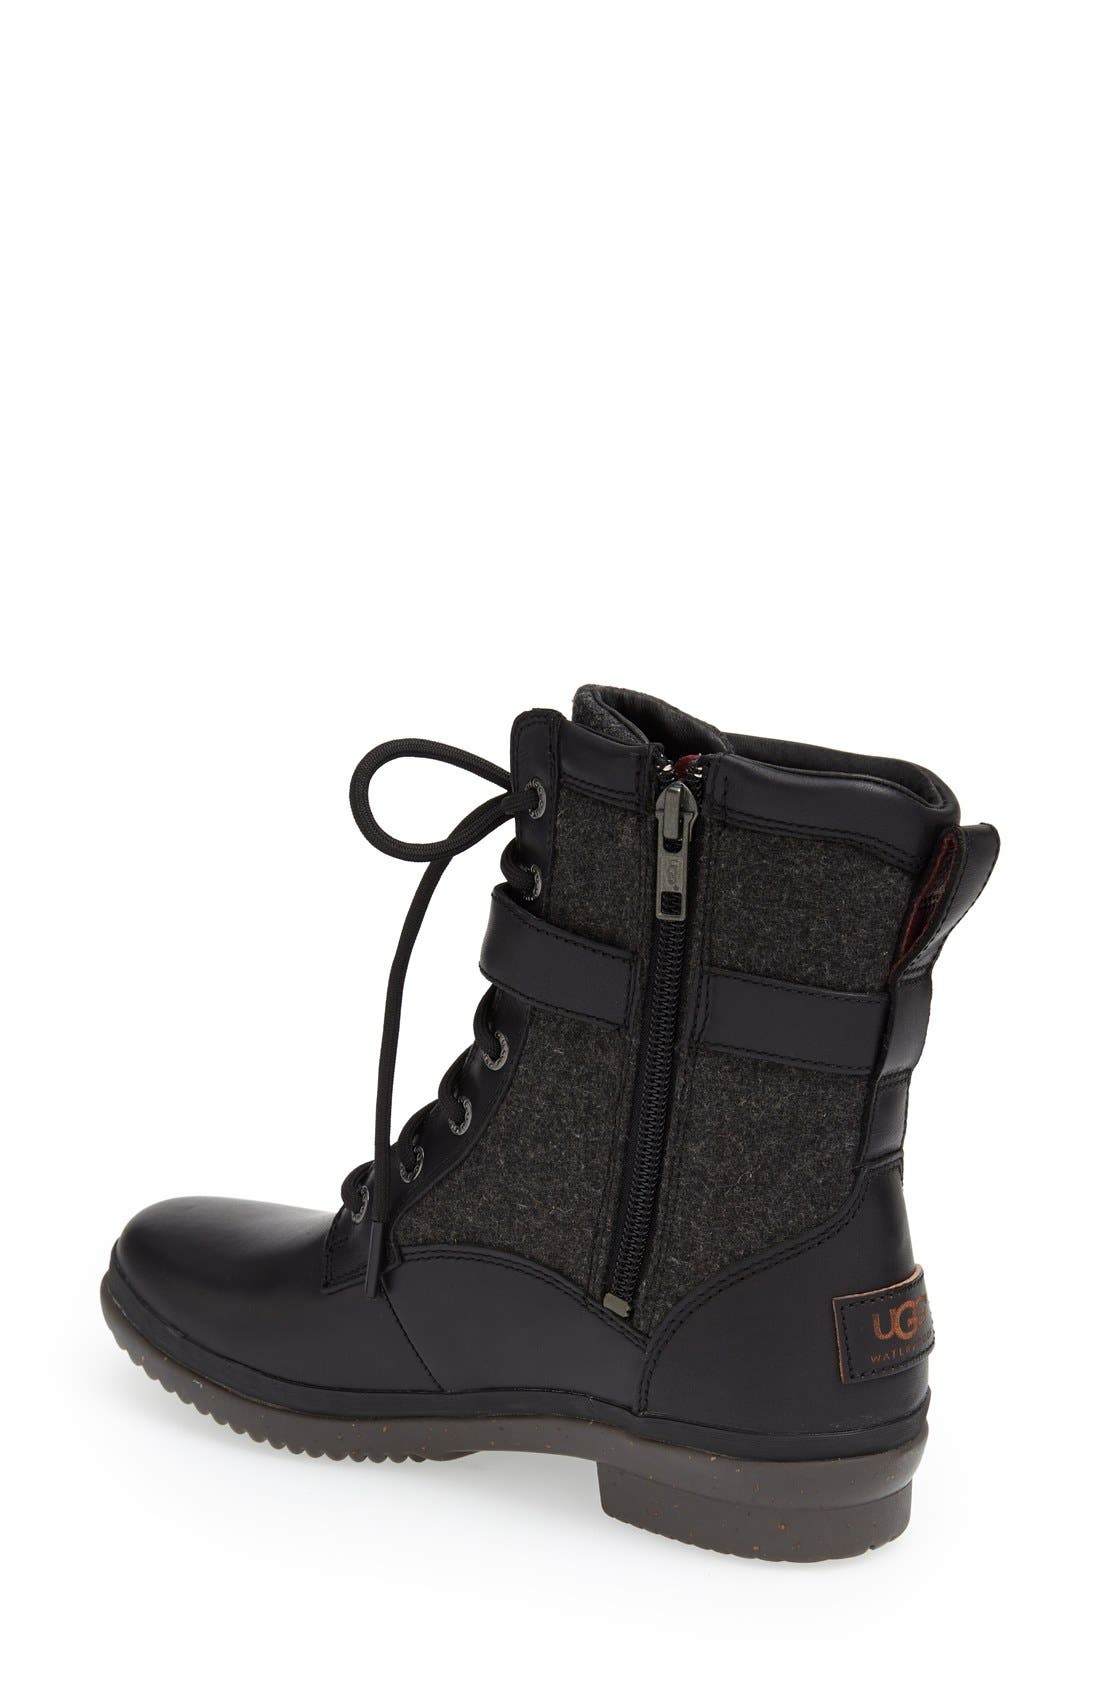 UGG<SUP>®</SUP>, Kesey Waterproof Boot, Alternate thumbnail 4, color, BLACK